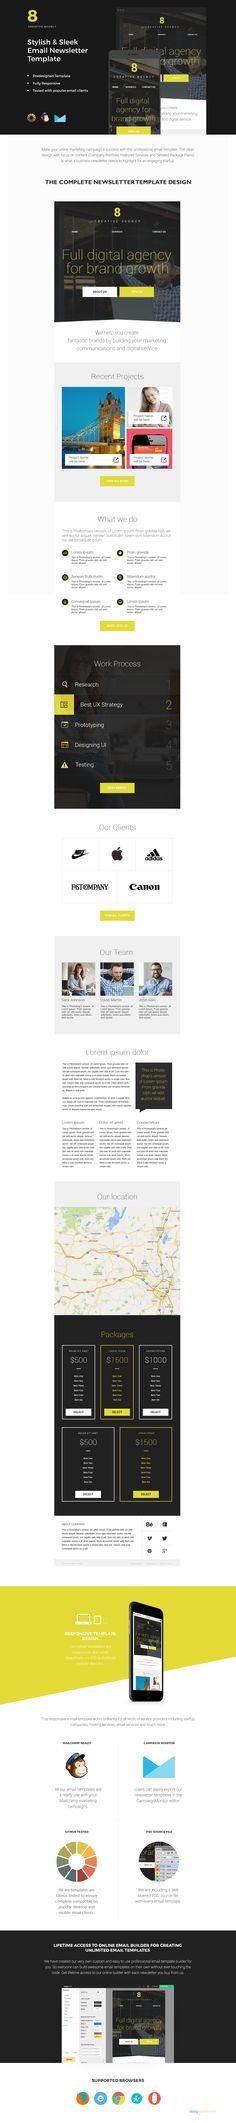 Free Email Templates by ActiveCampaign | Email Template ...